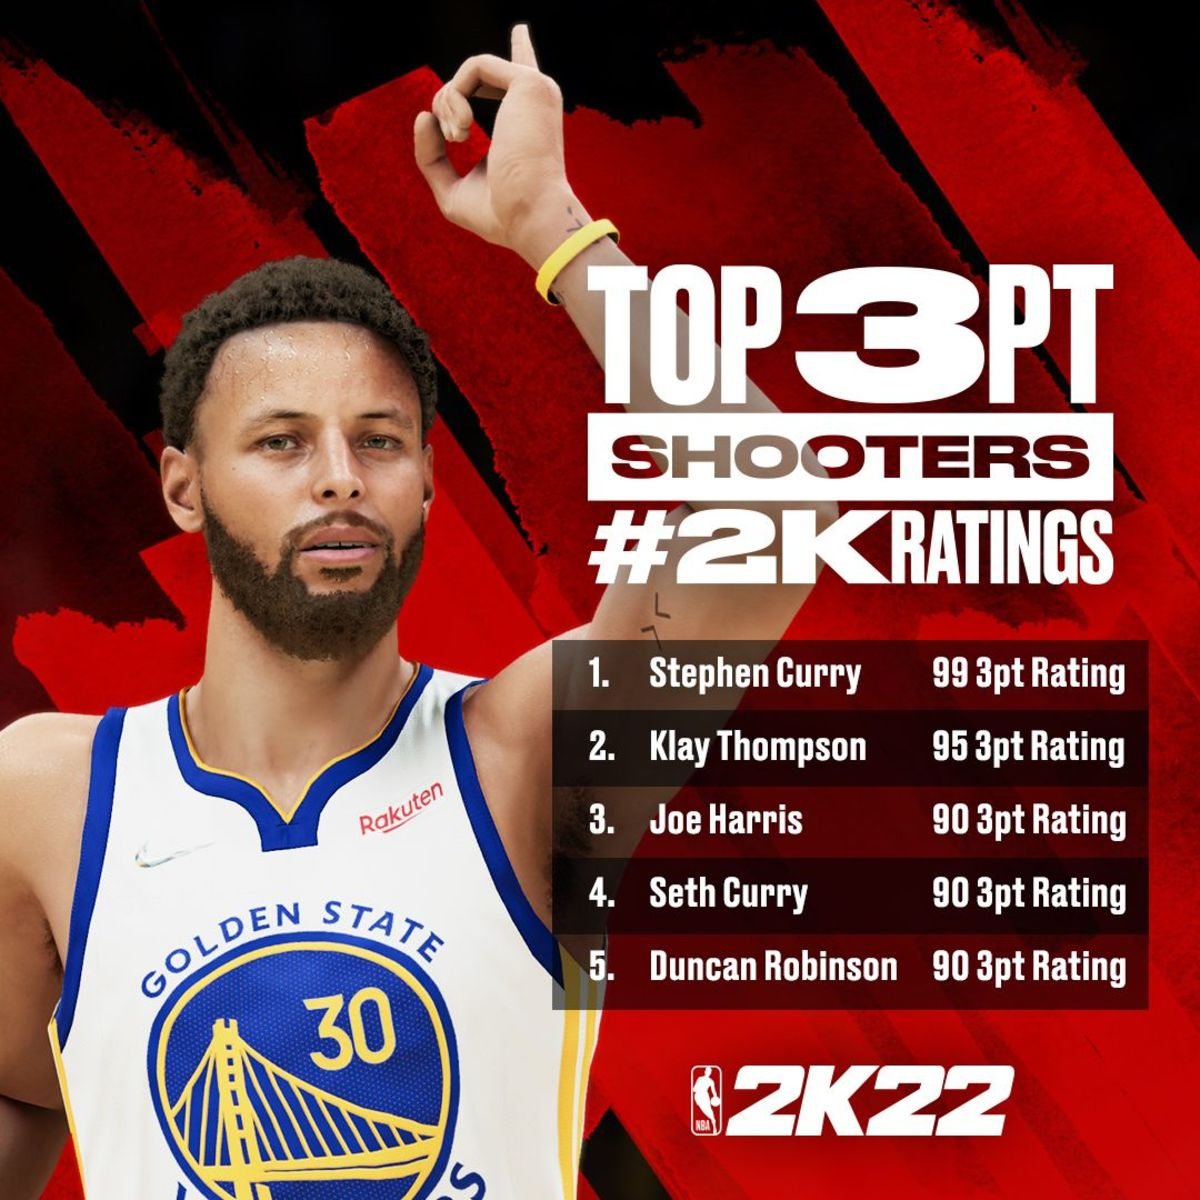 NBA 2K's Best 3-Point Shooters: Stephen Curry And Klay Thompson Top The List